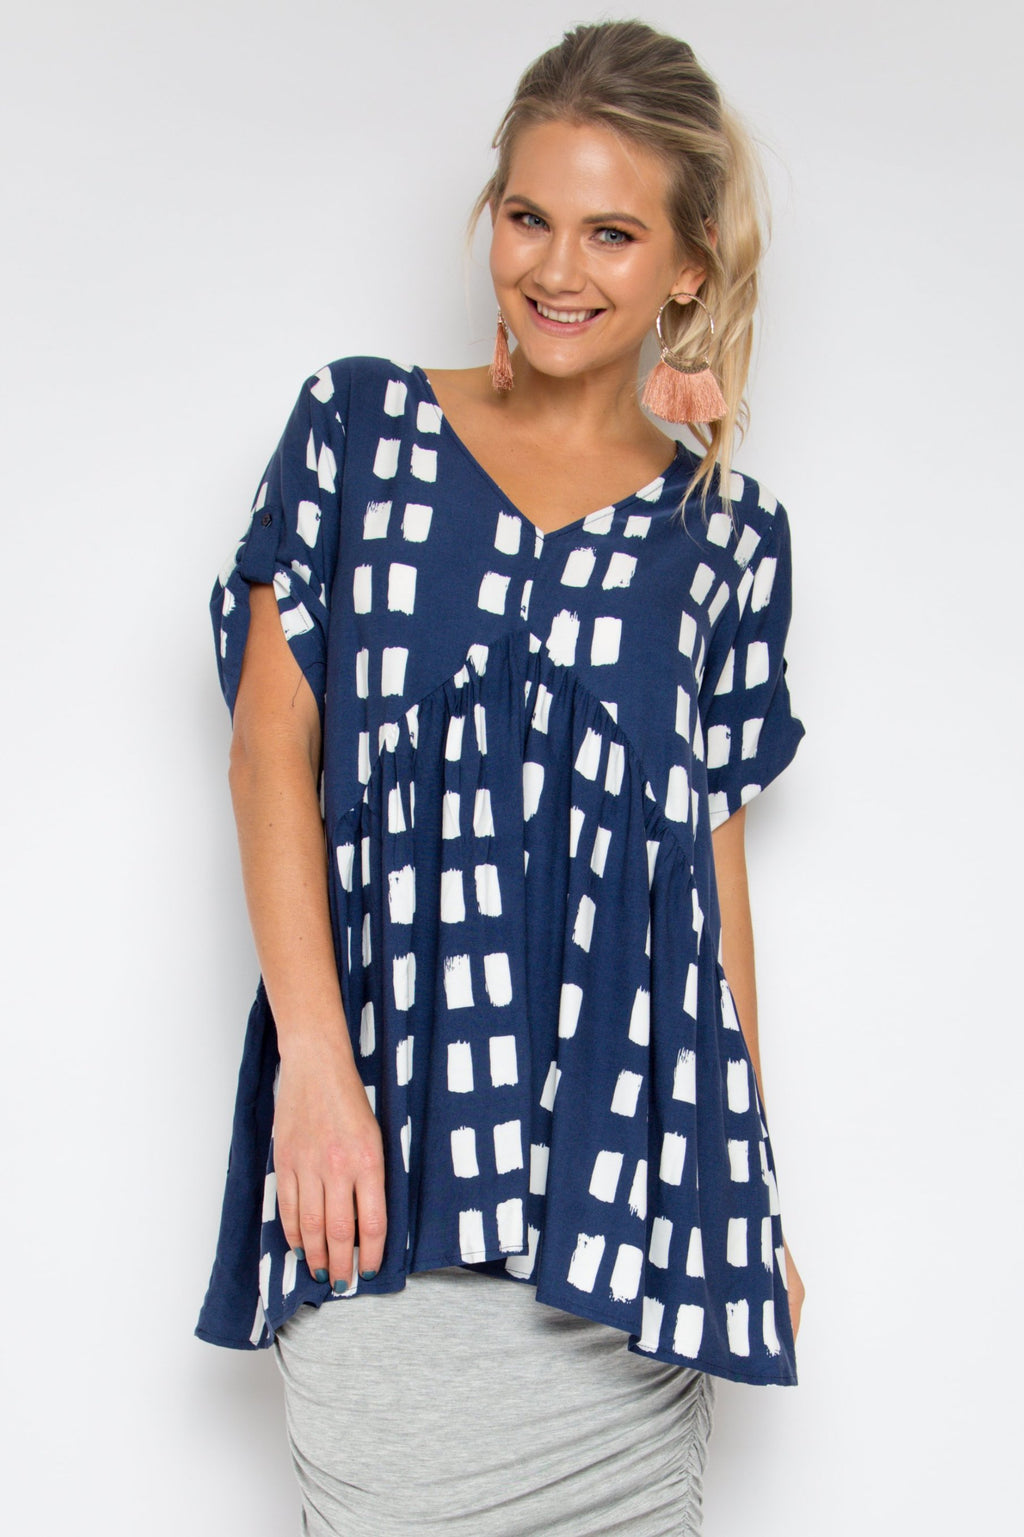 Short Sleeve Peak Top in Navy Splash